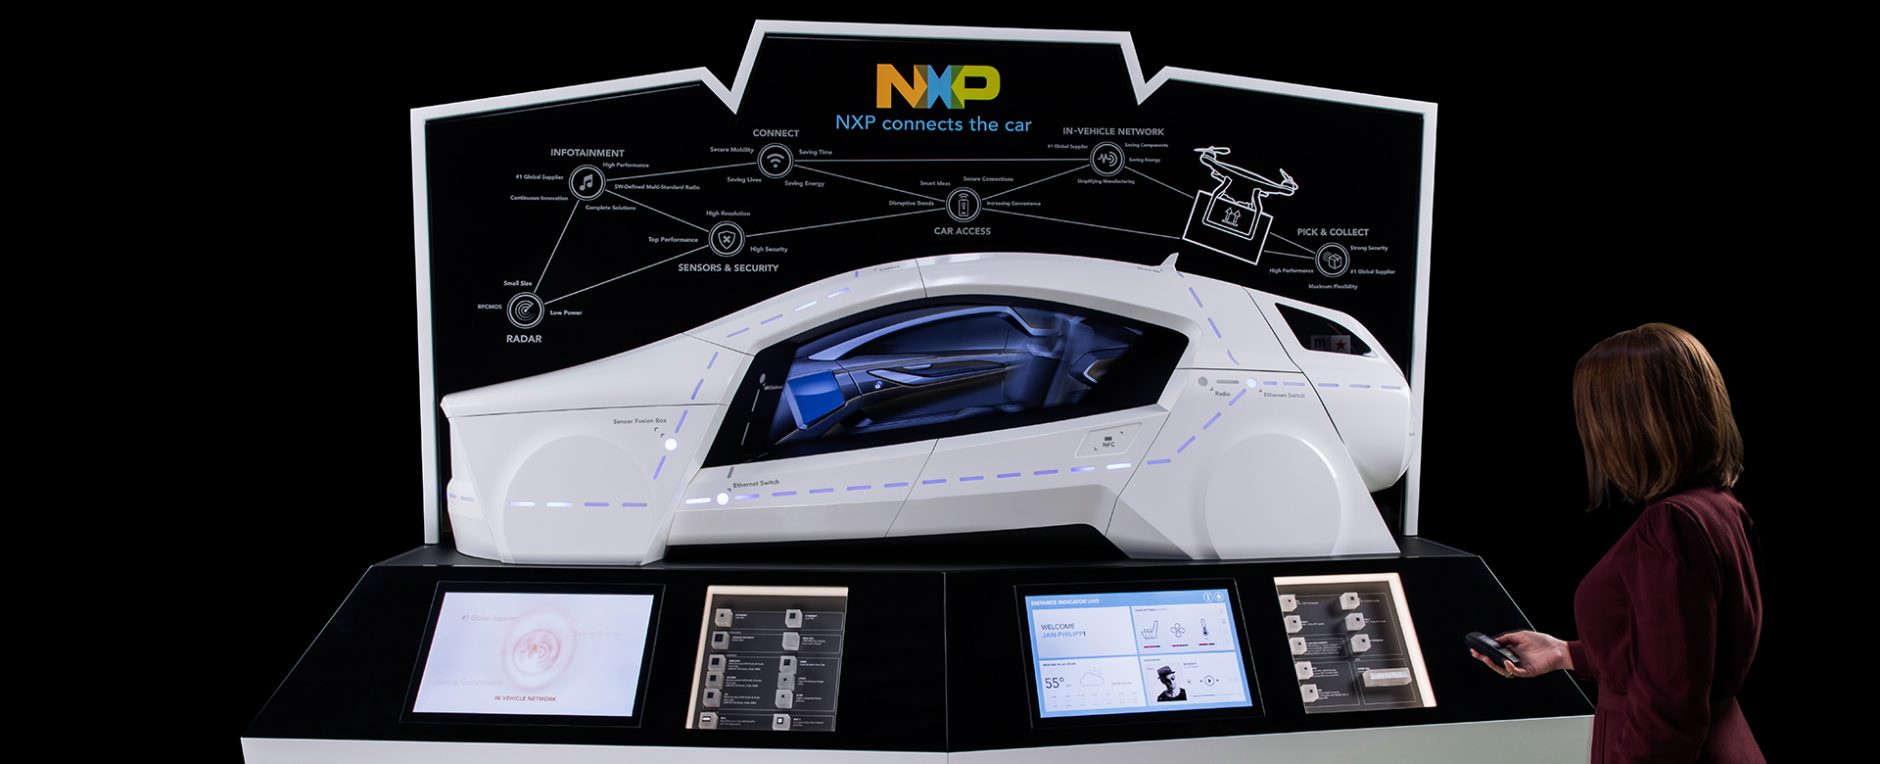 nxp_automotivedemo_caraccess_uwb2